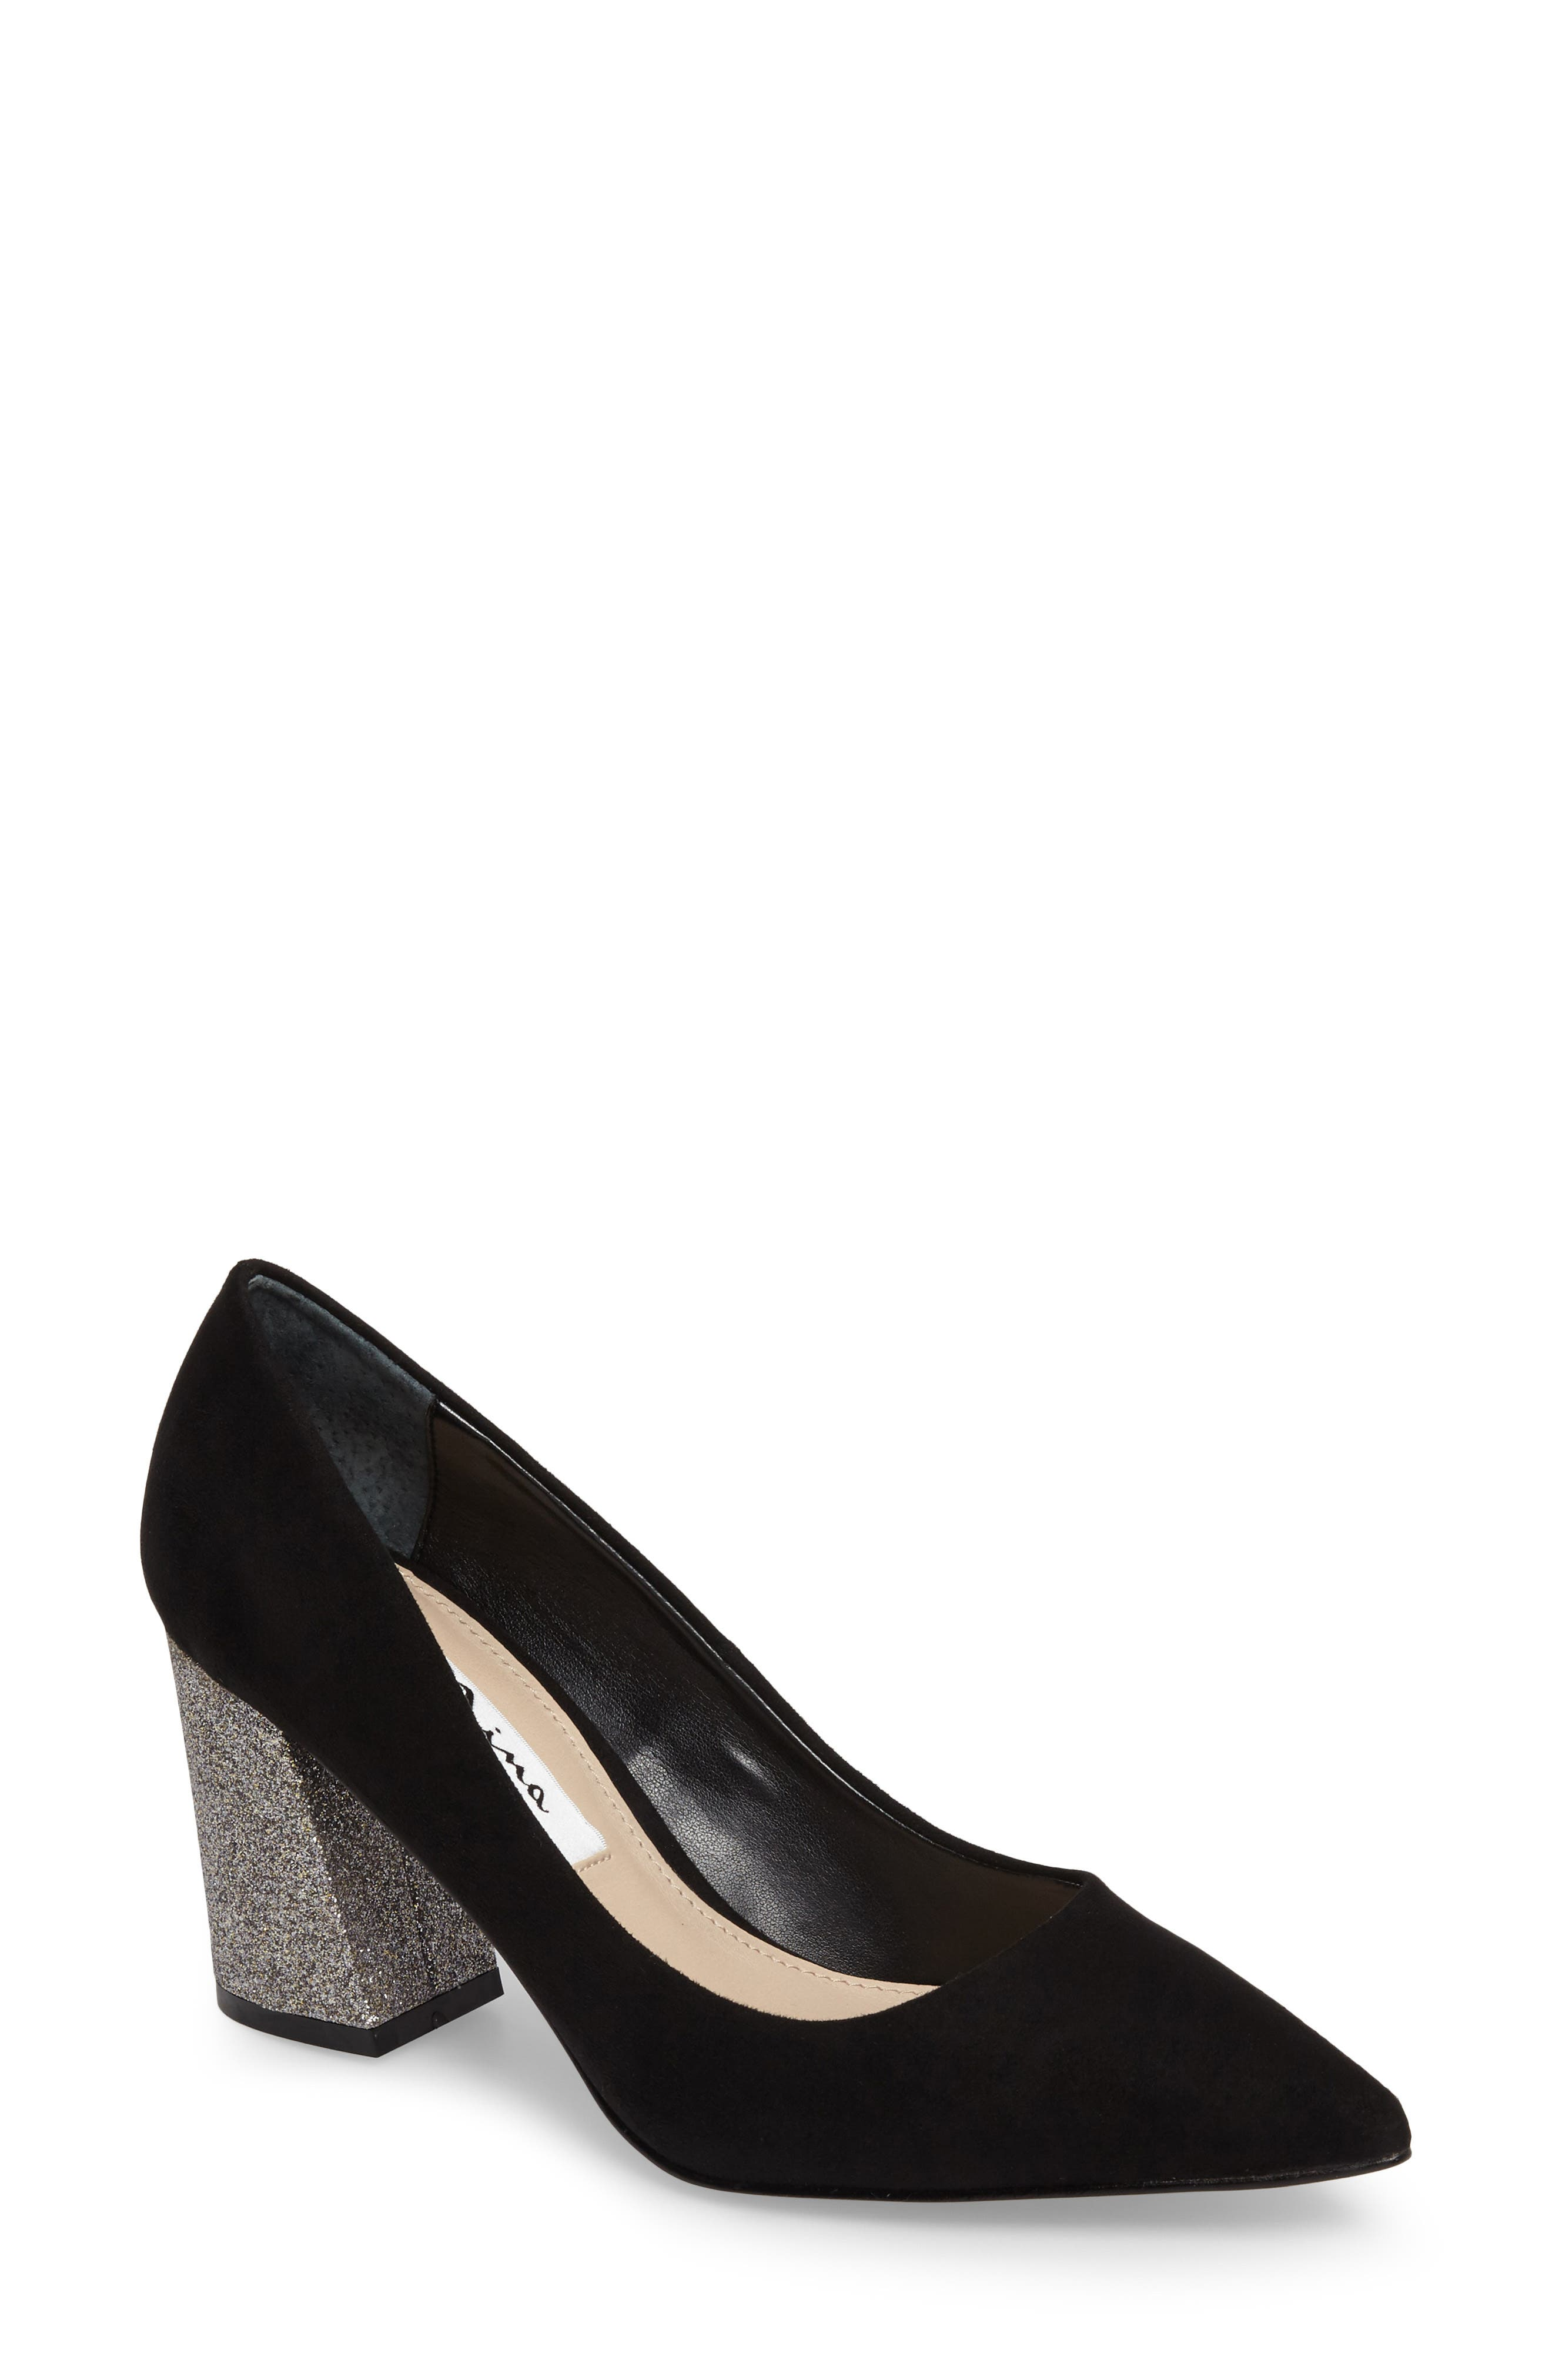 Tinsley Pointy Toe Pump,                         Main,                         color,